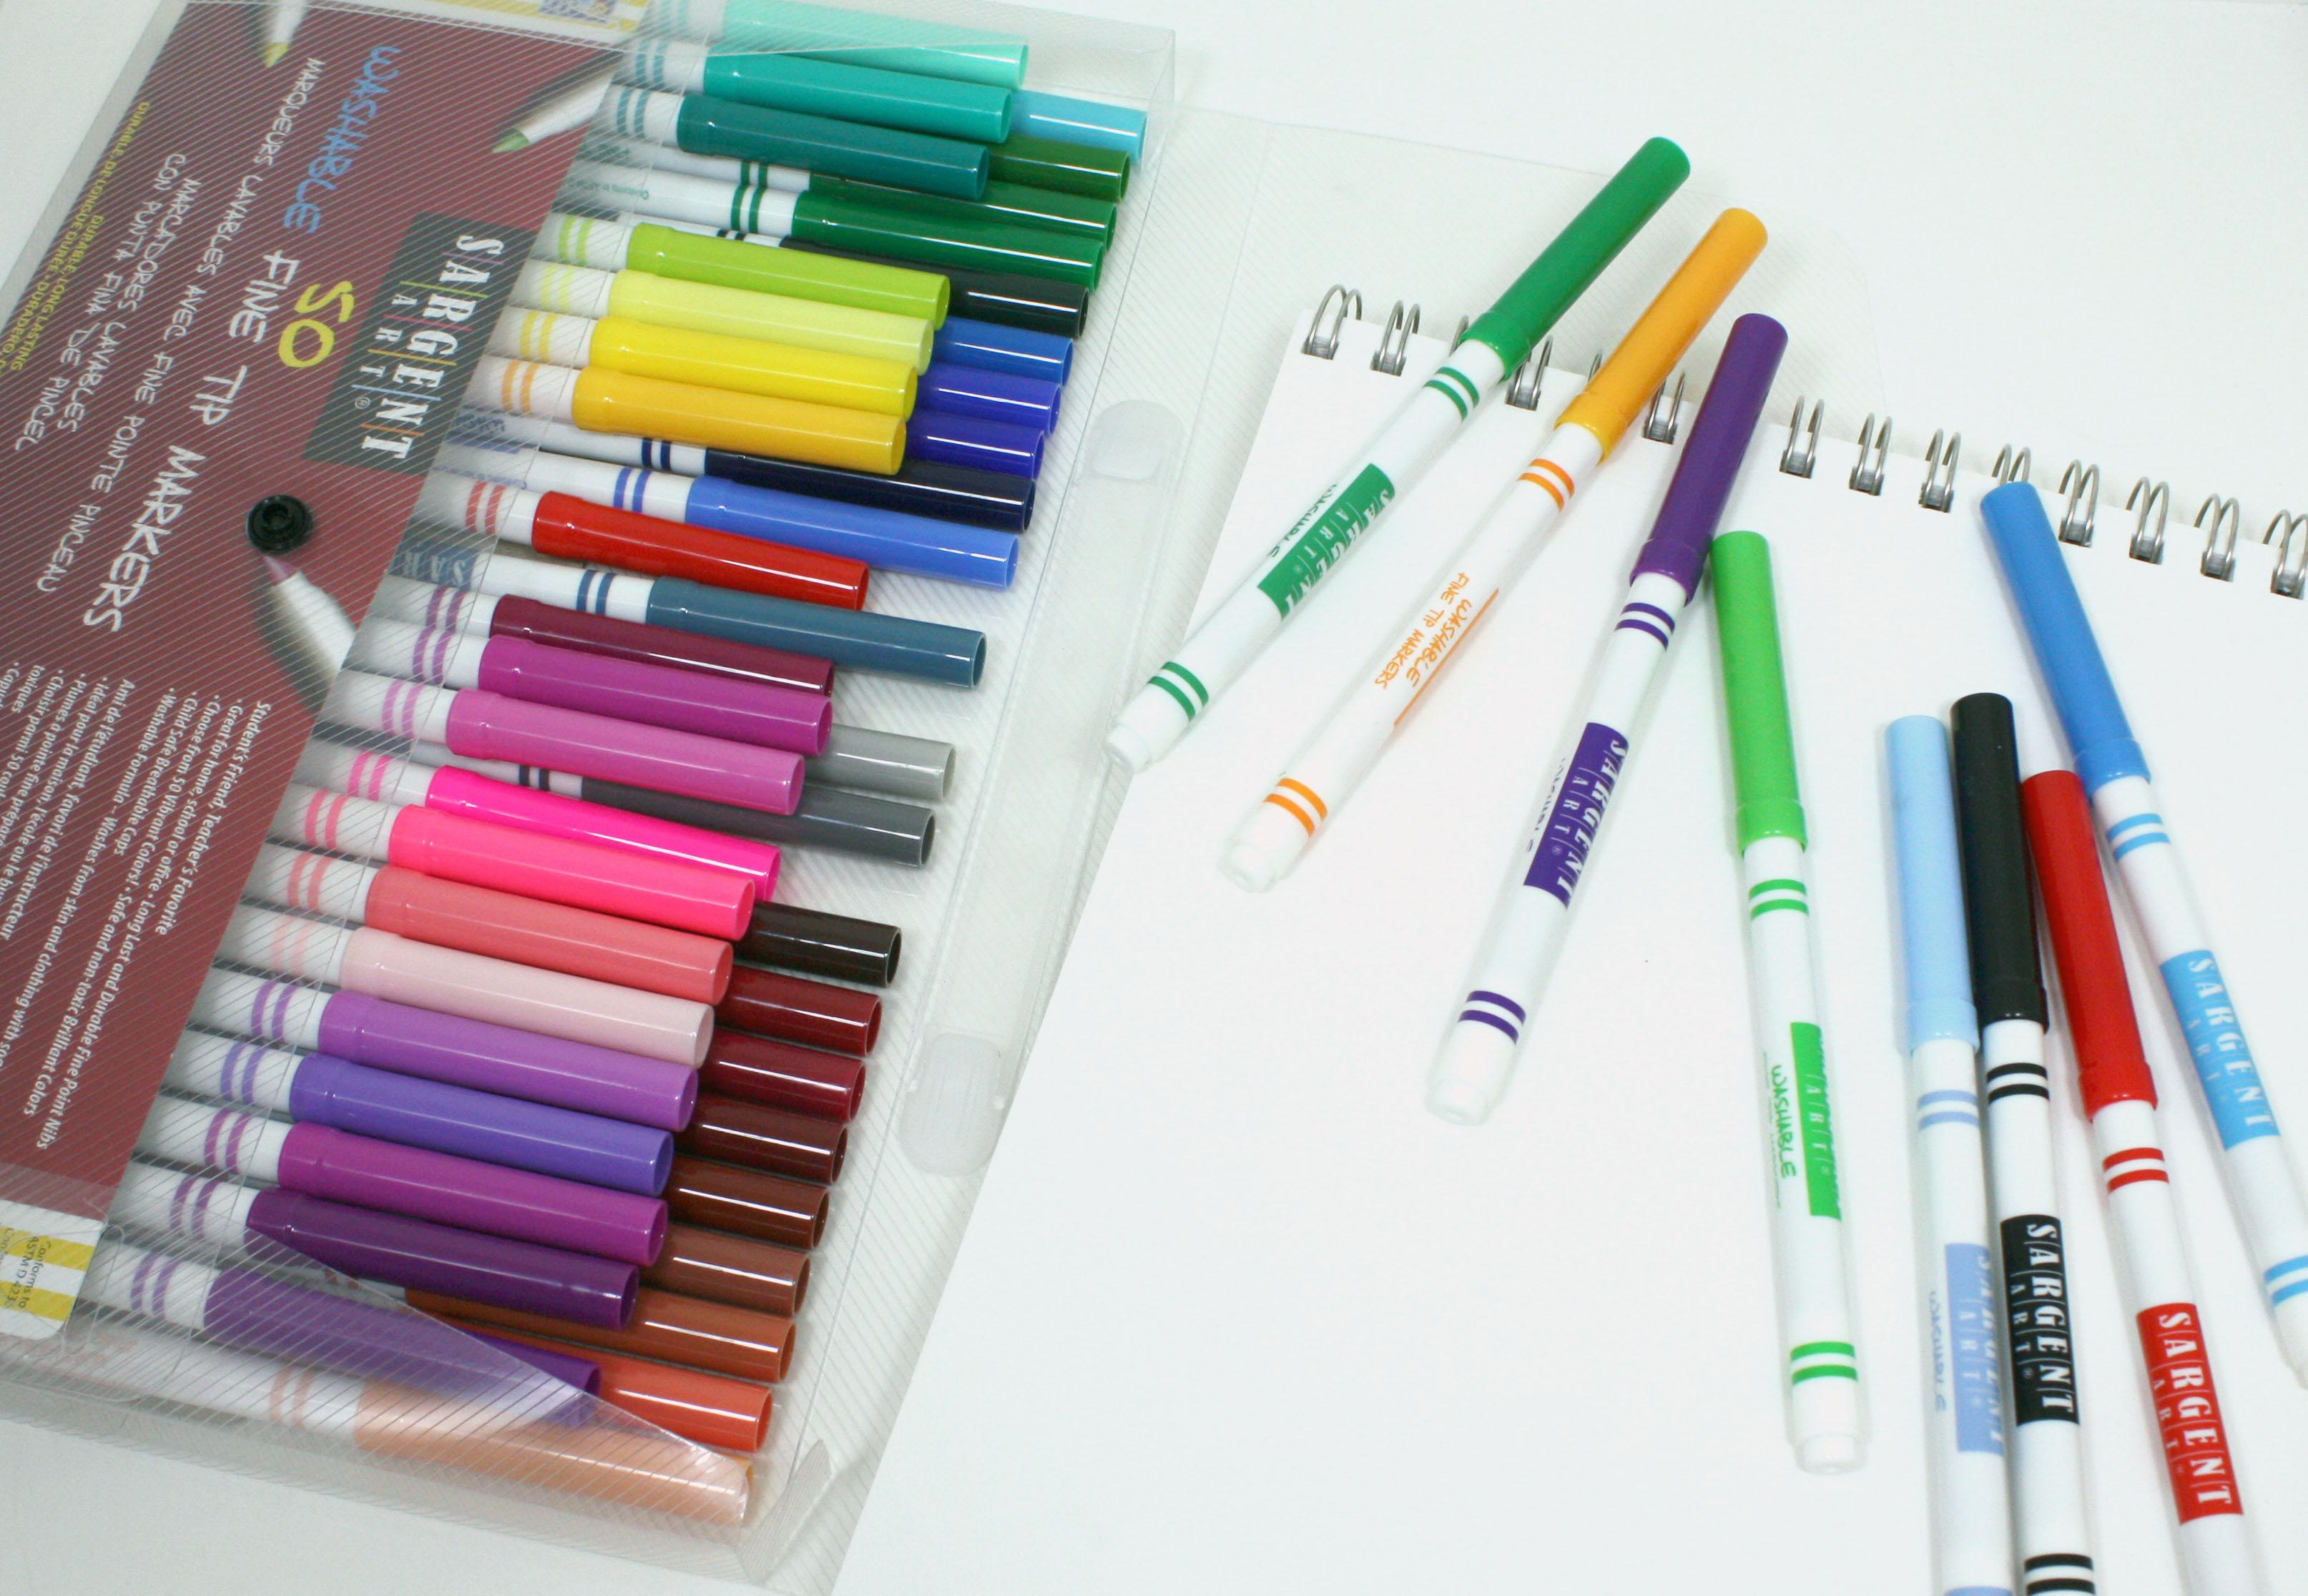 Color drawing pens for artists - From The Manufacturer